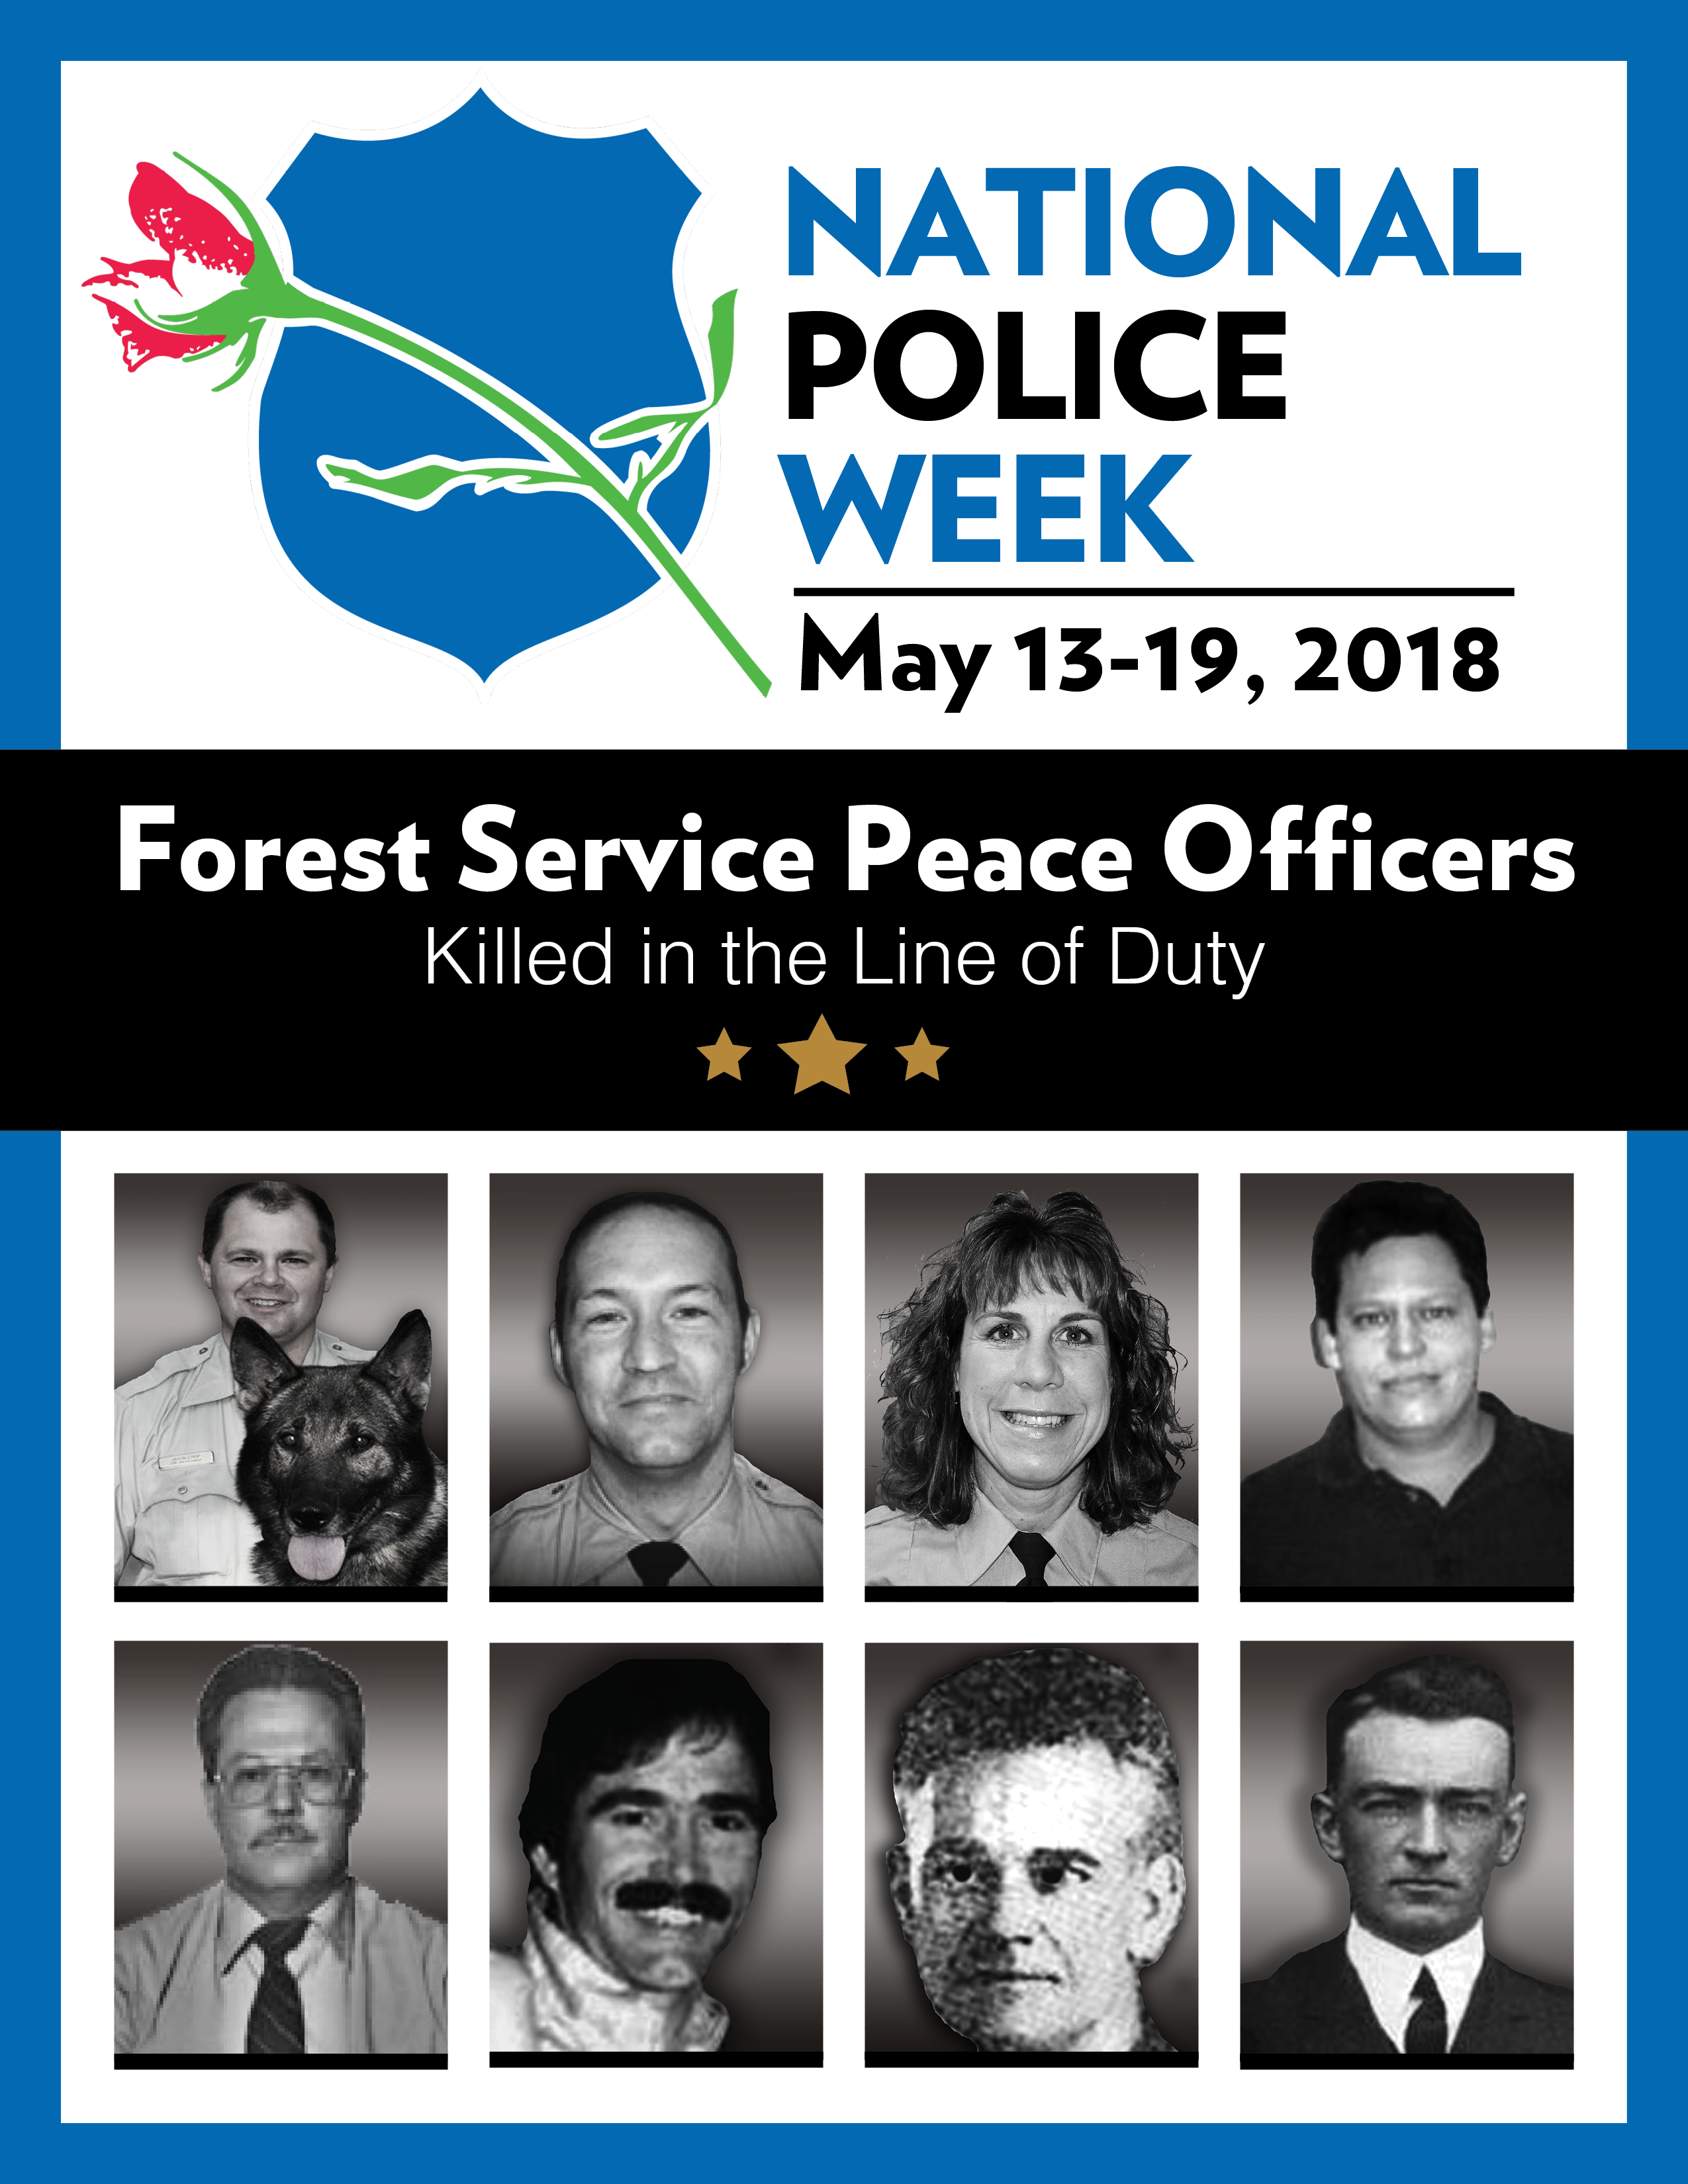 Photos of law enforcement officers killed in the line of duty.